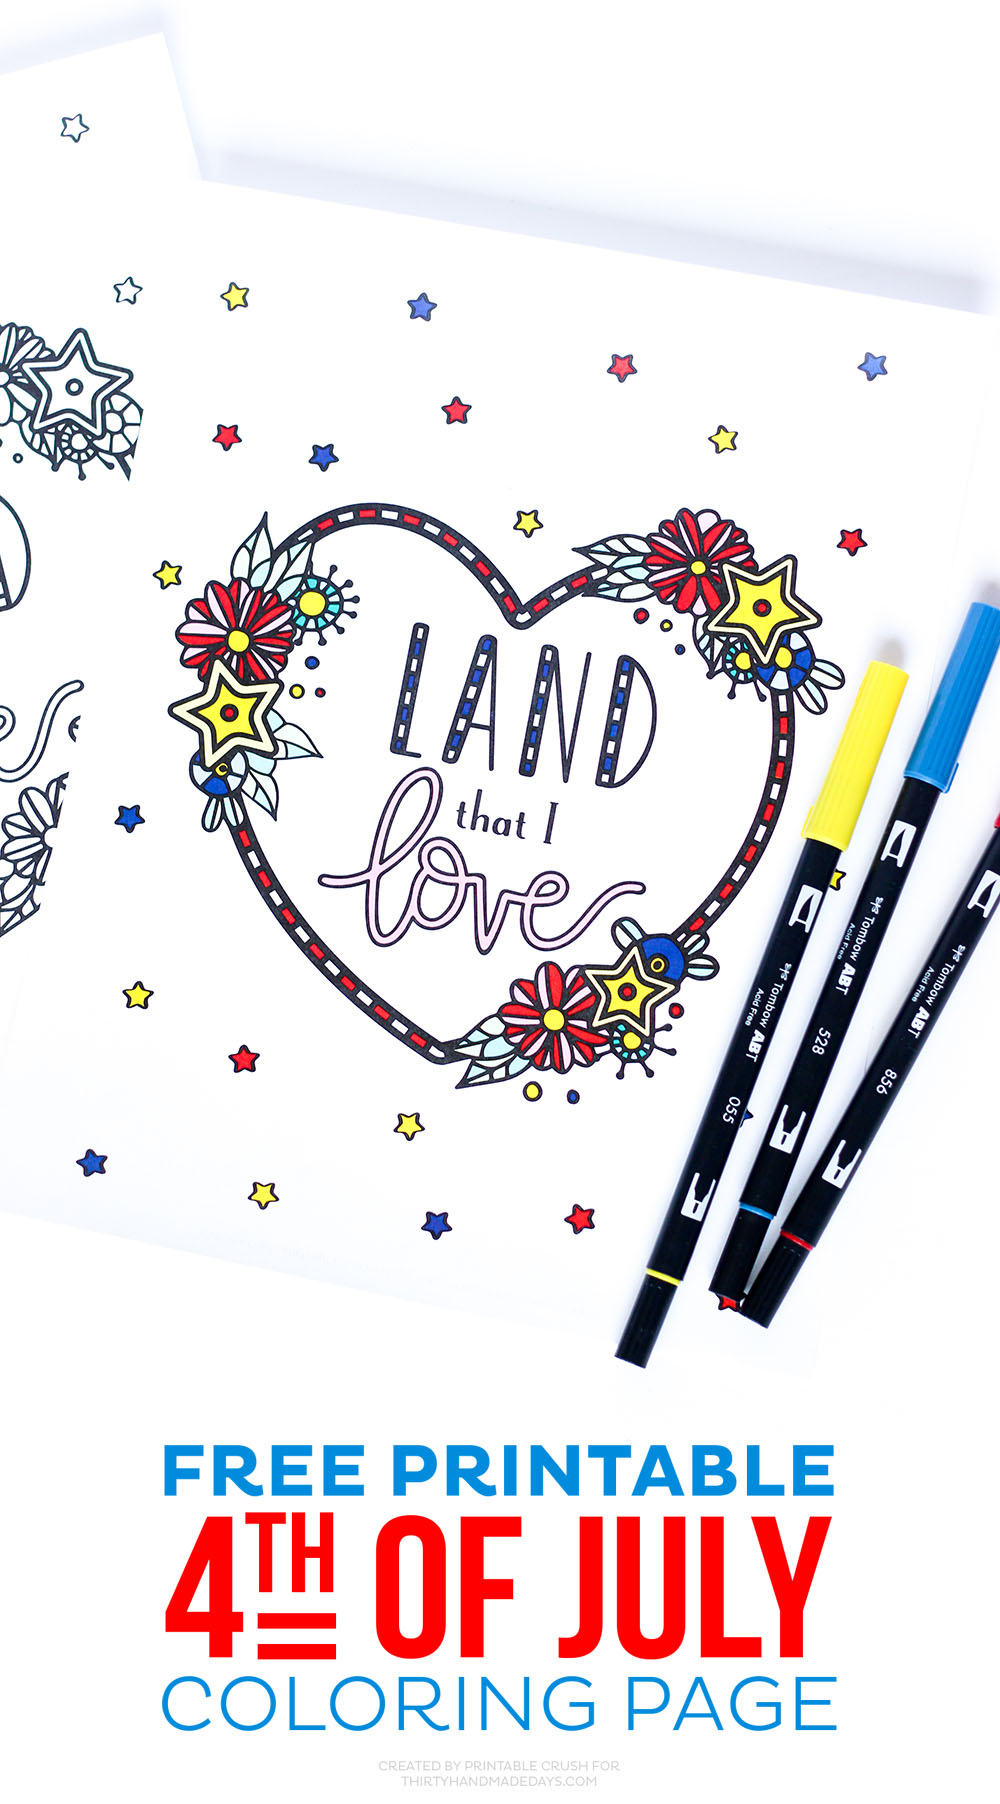 4Th Of July Coloring Pages - Free Printable 4Th Of July Stationery